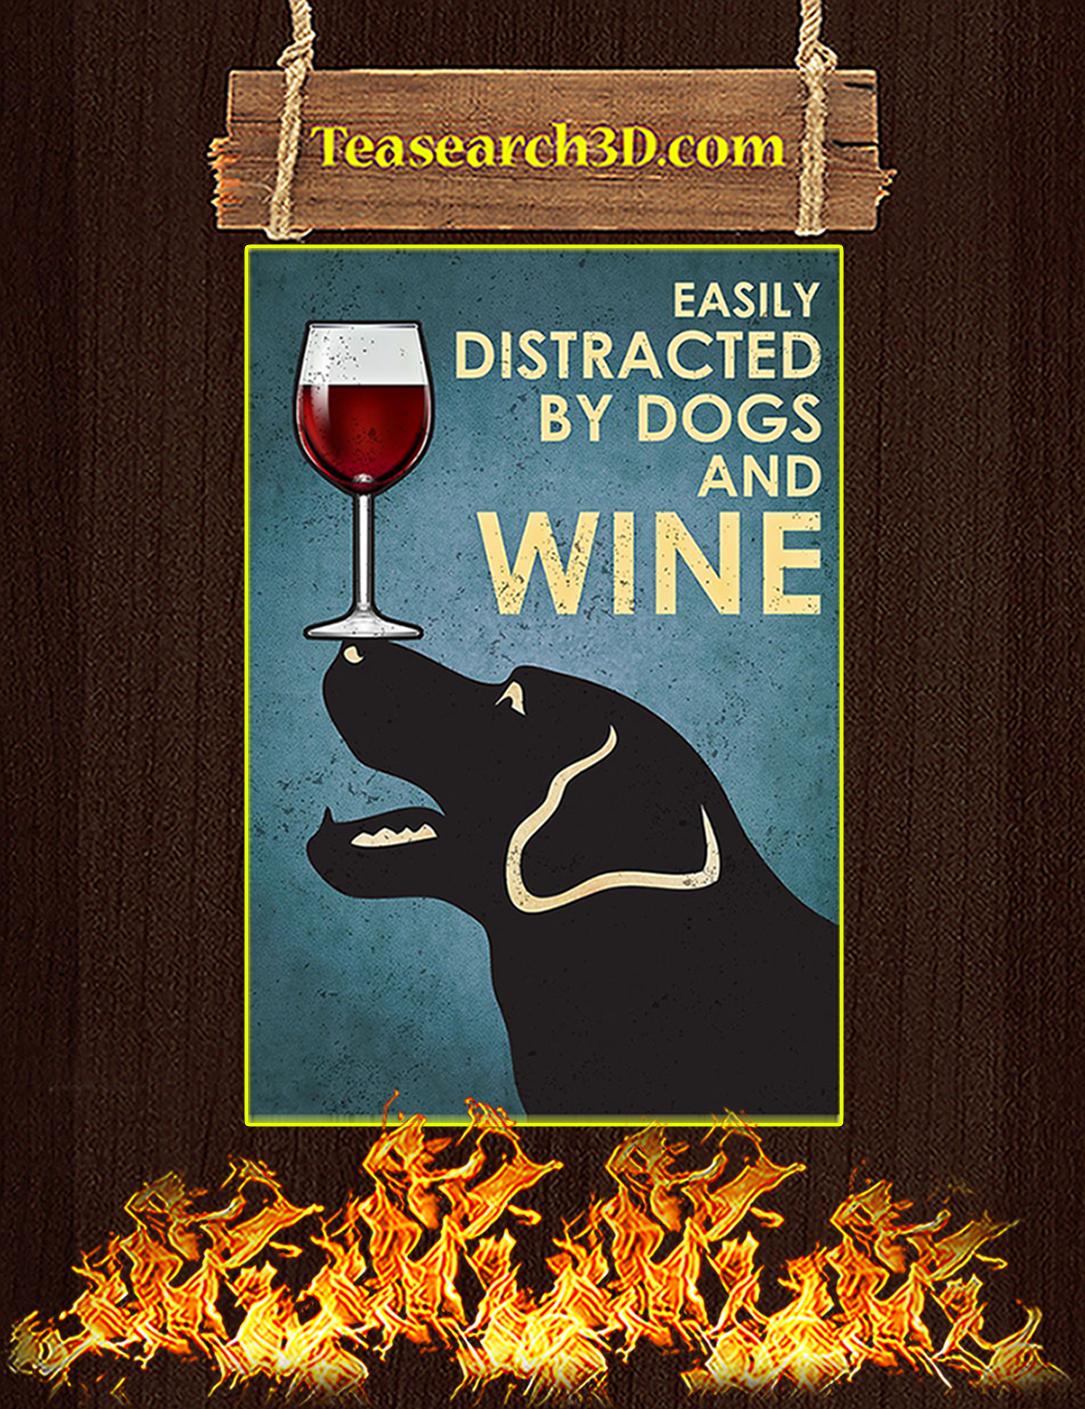 Easily distracted by dogs and wine poster A2